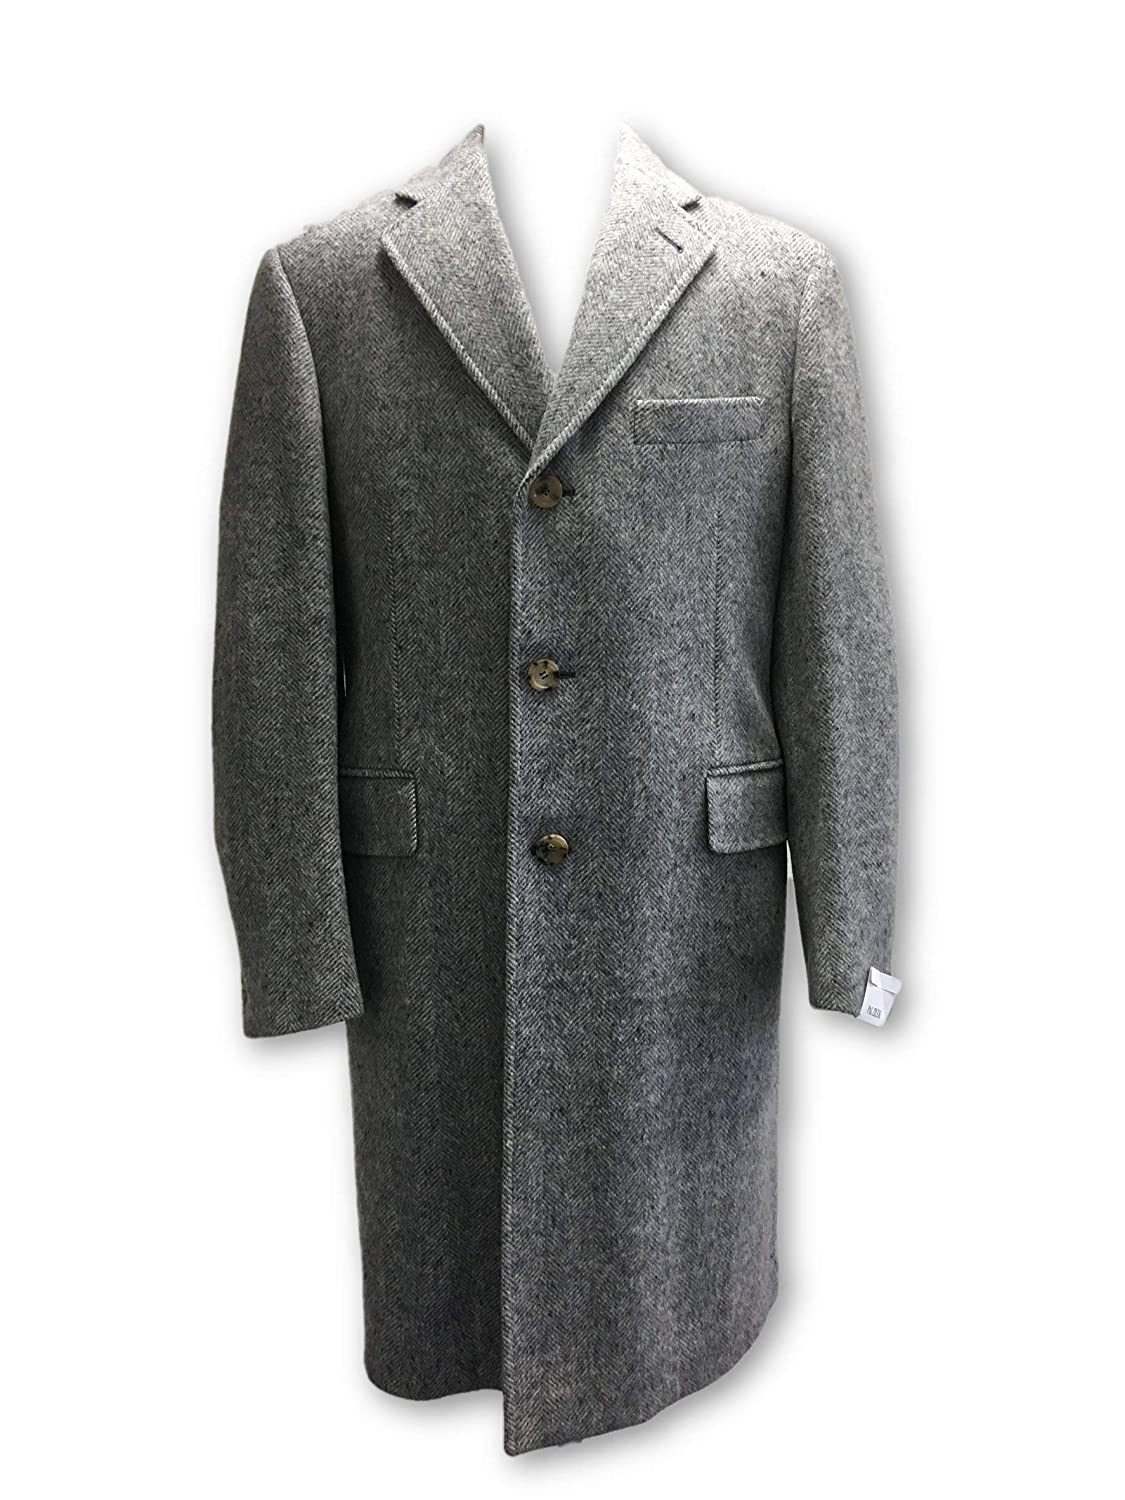 Pal Zileri Wool Overcoat in Grey Herringbone Size 40R Wool: Amazon.es: Ropa y accesorios